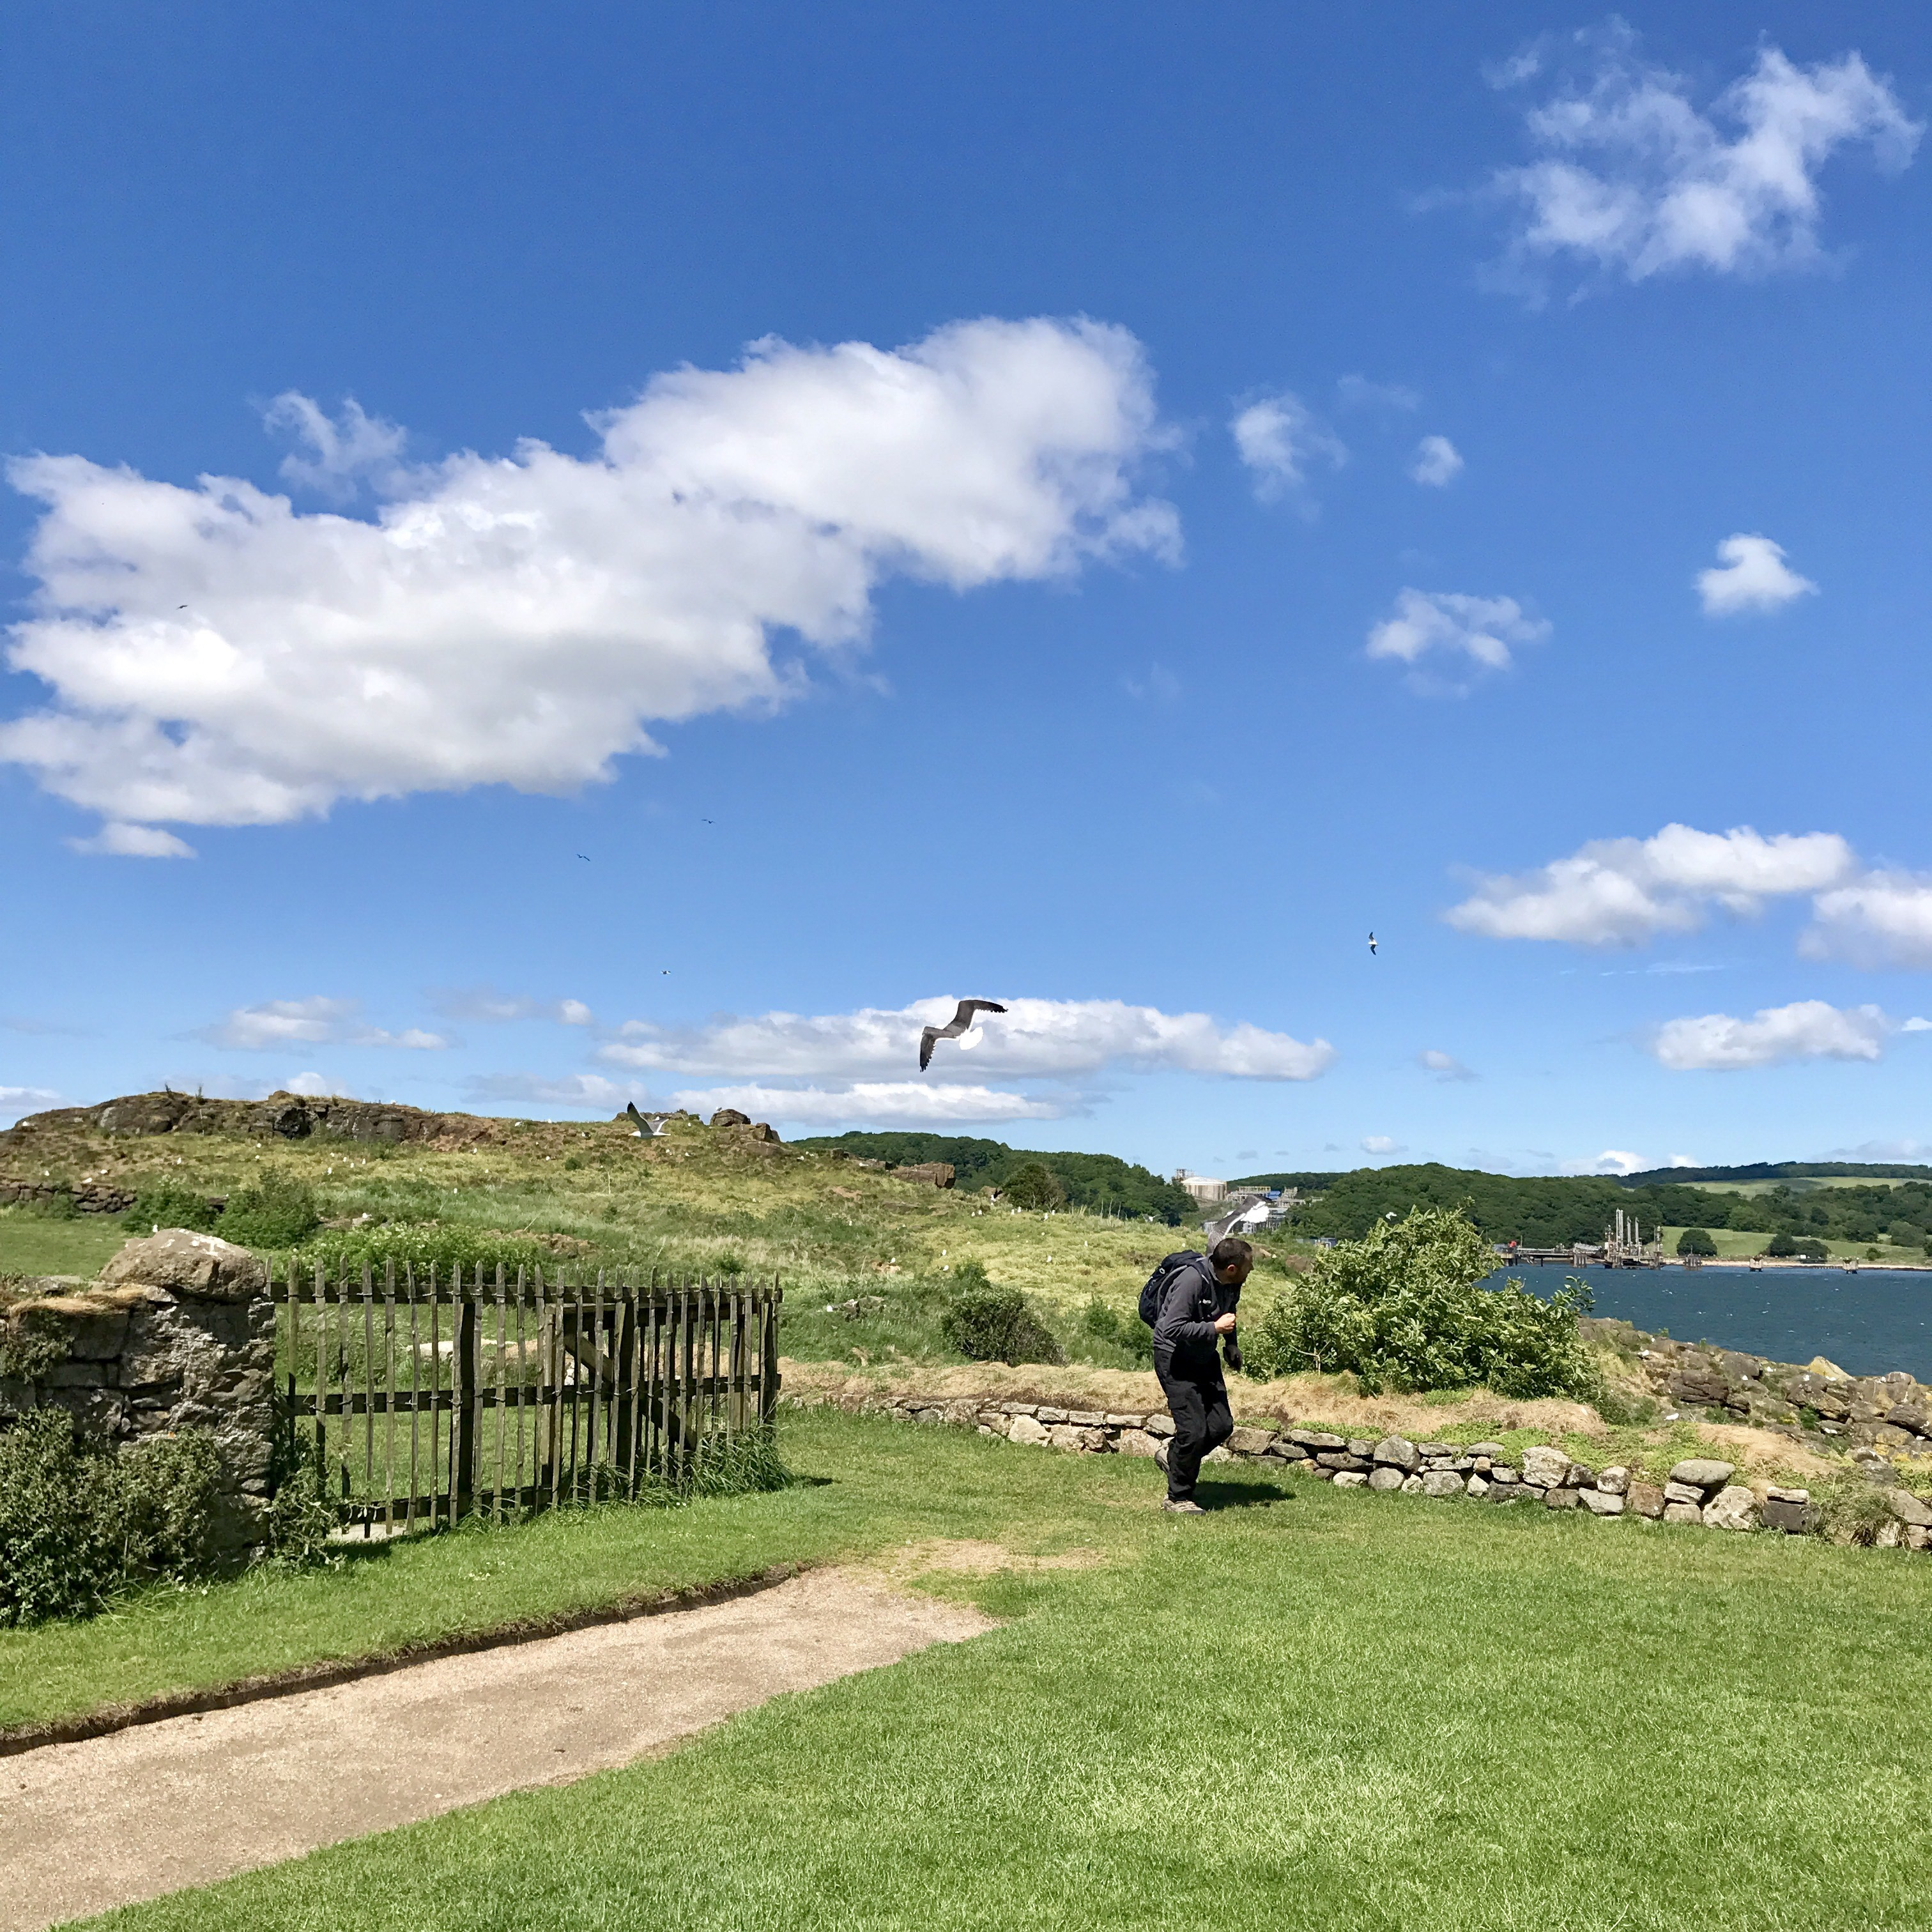 Discover The Fascinating History Of Inchcolm Island With A